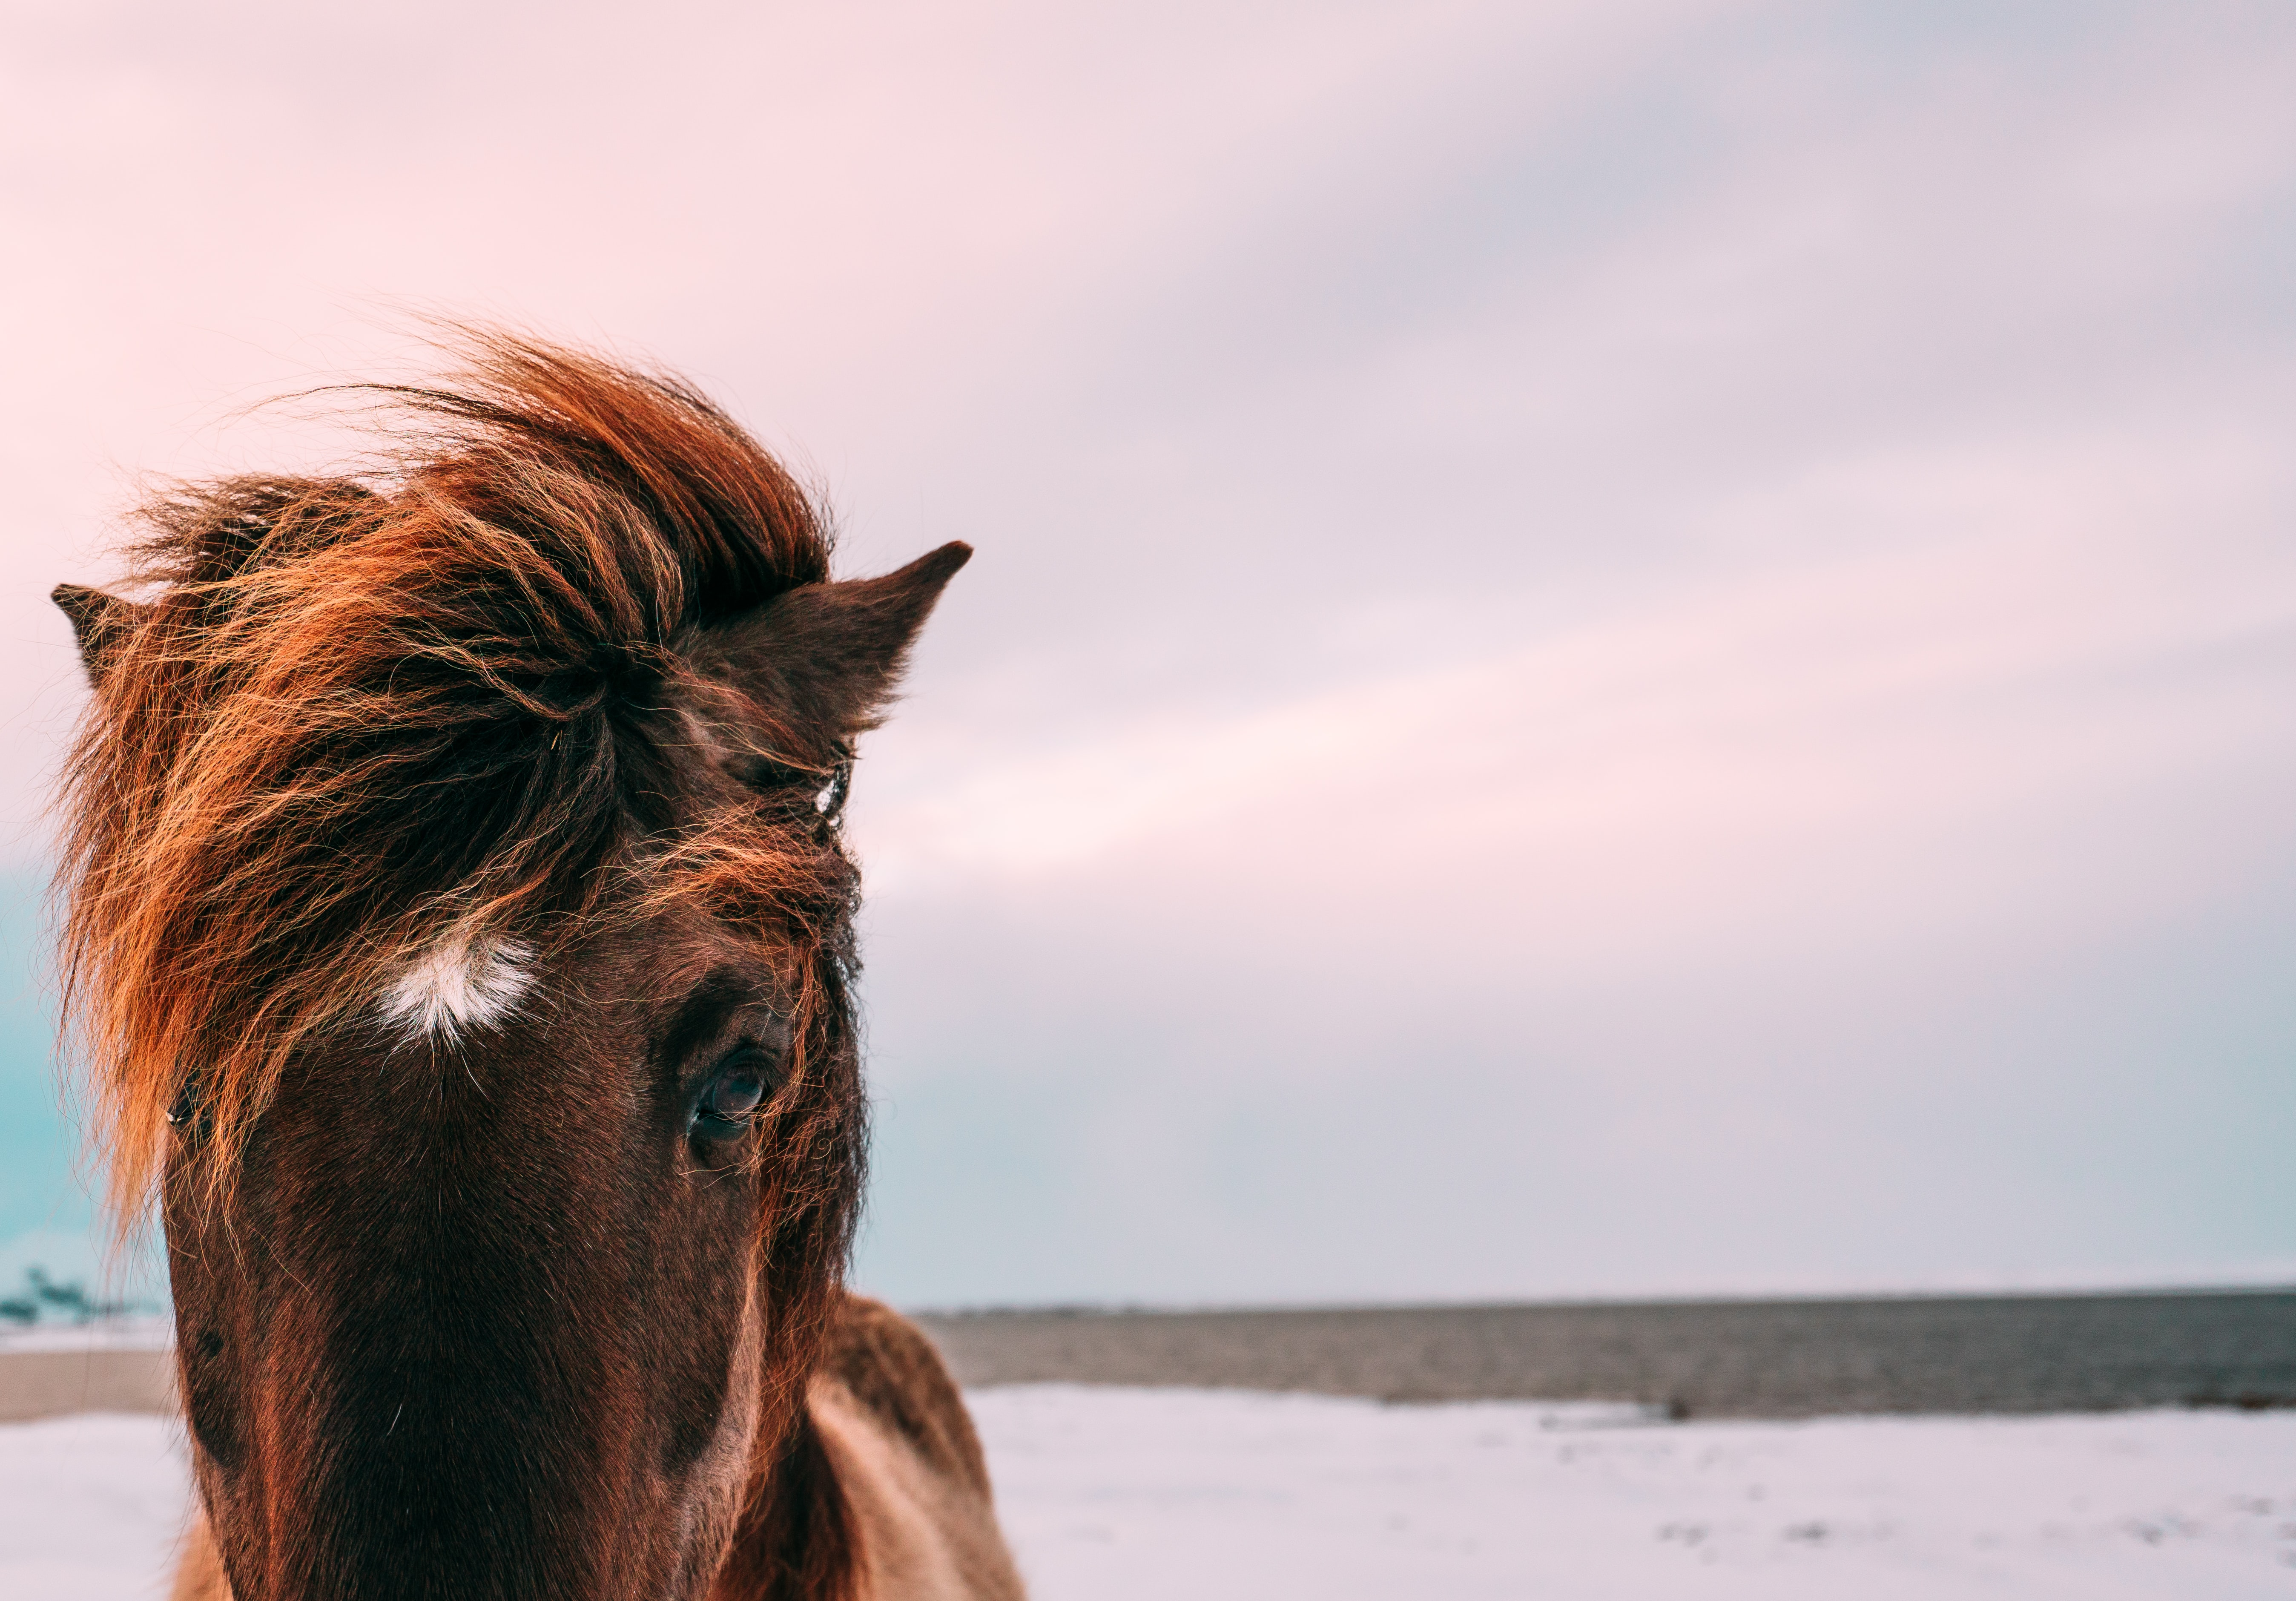 Close-up of the head of a brown horse with a tousled mane standing in the snow